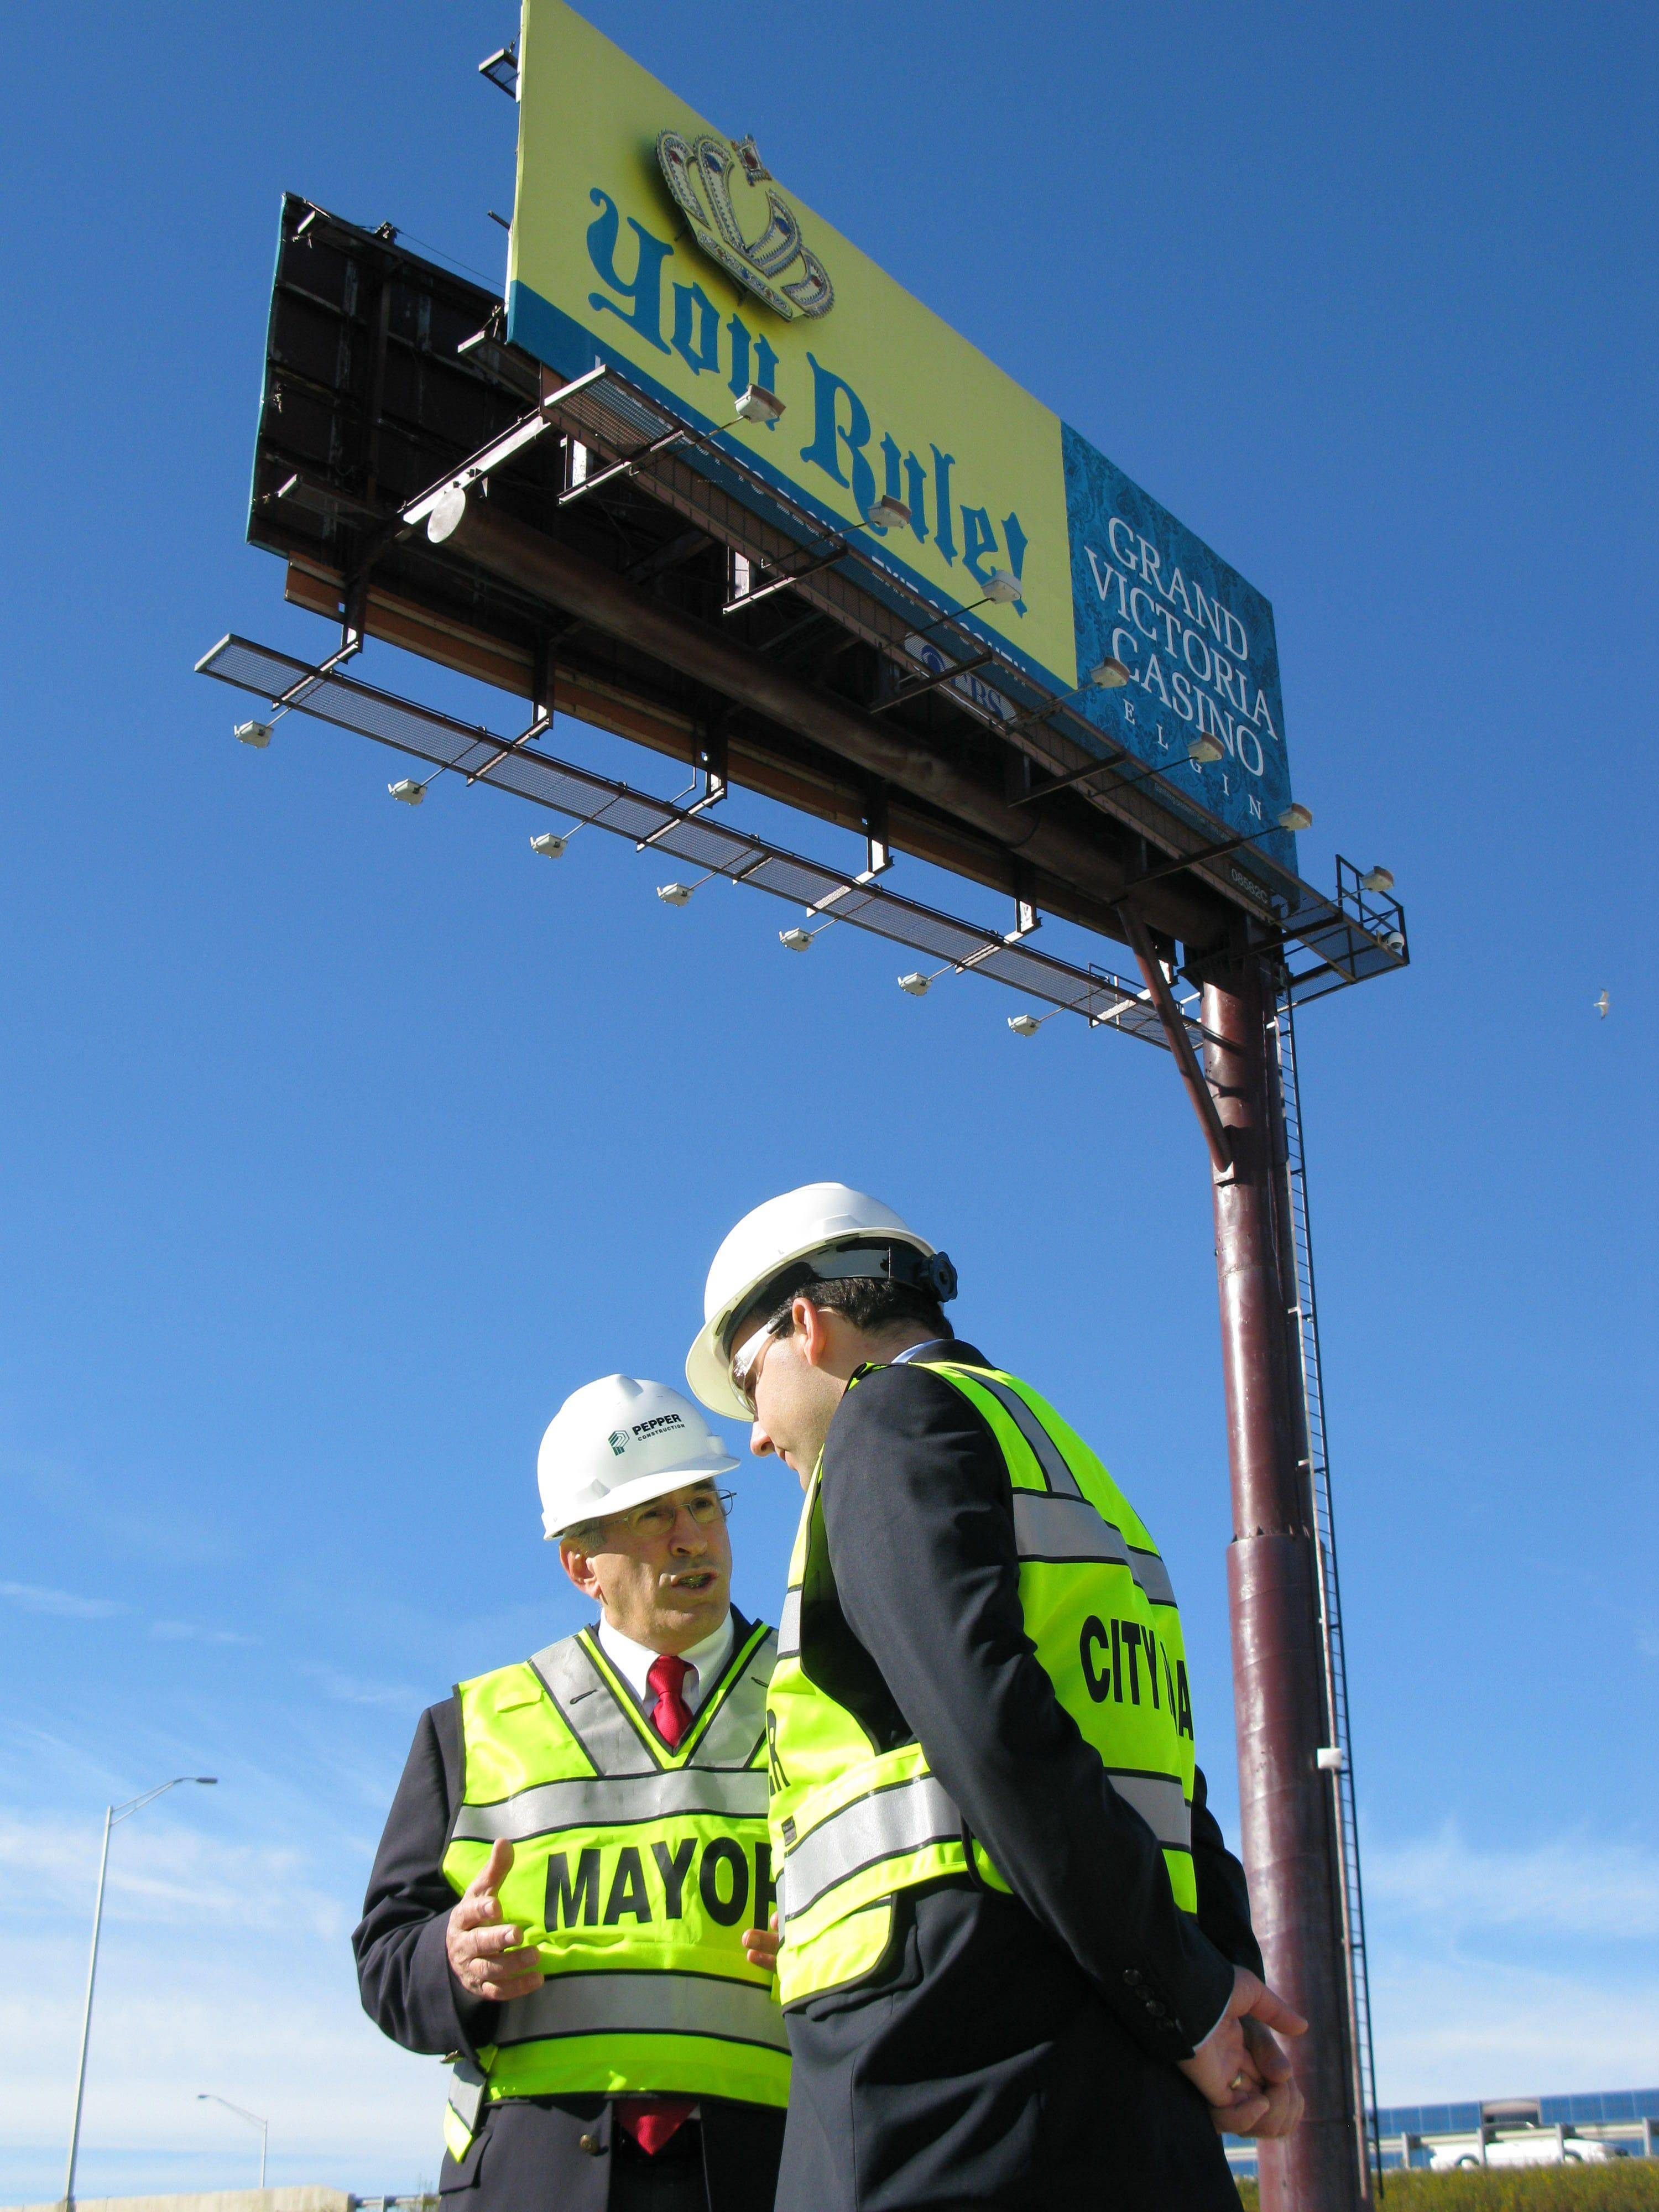 A billboard promoting Elgin's Grand Victoria Casino looms over the site of Des Plaines' casino. Mayor Marty Moylan, left, and acting City Manager Jason Slowinski said the billboard has been there for a long time, but Slowinski expects it to come down before Des Plaines' casino opens in late summer 2011.